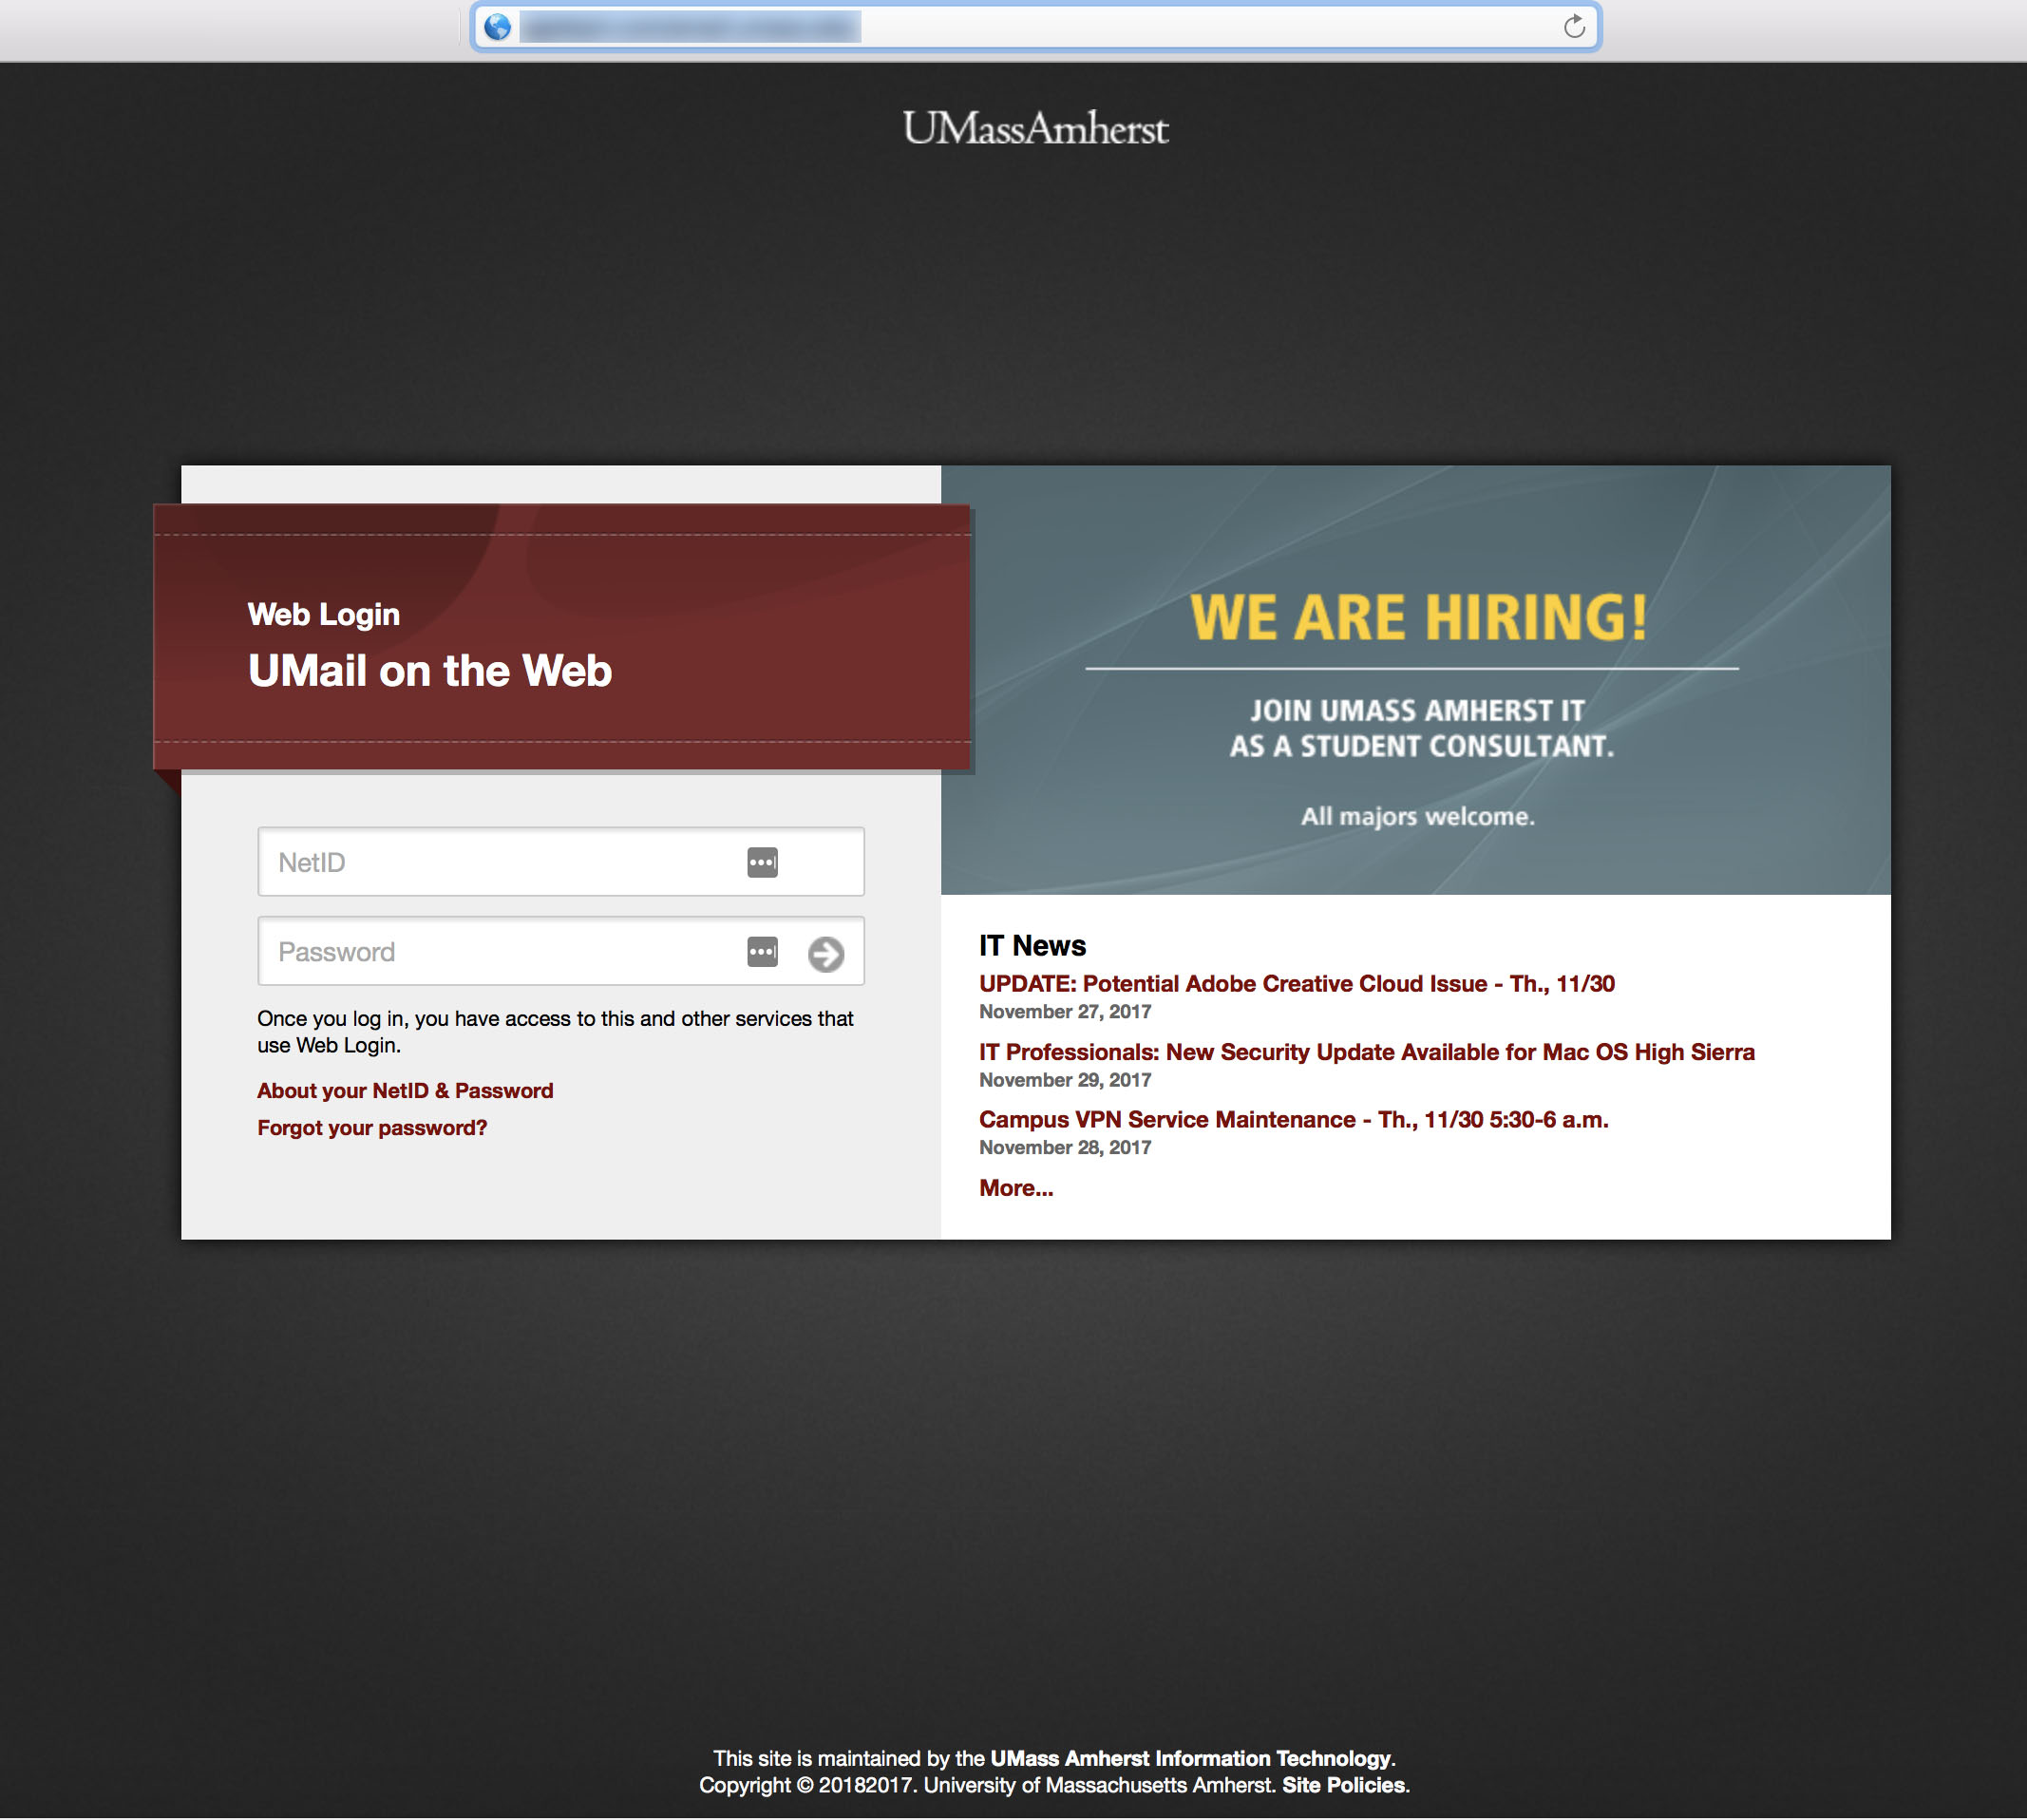 fake umail login page - the URL is blurred out, but the address was not a trusted umass web address.